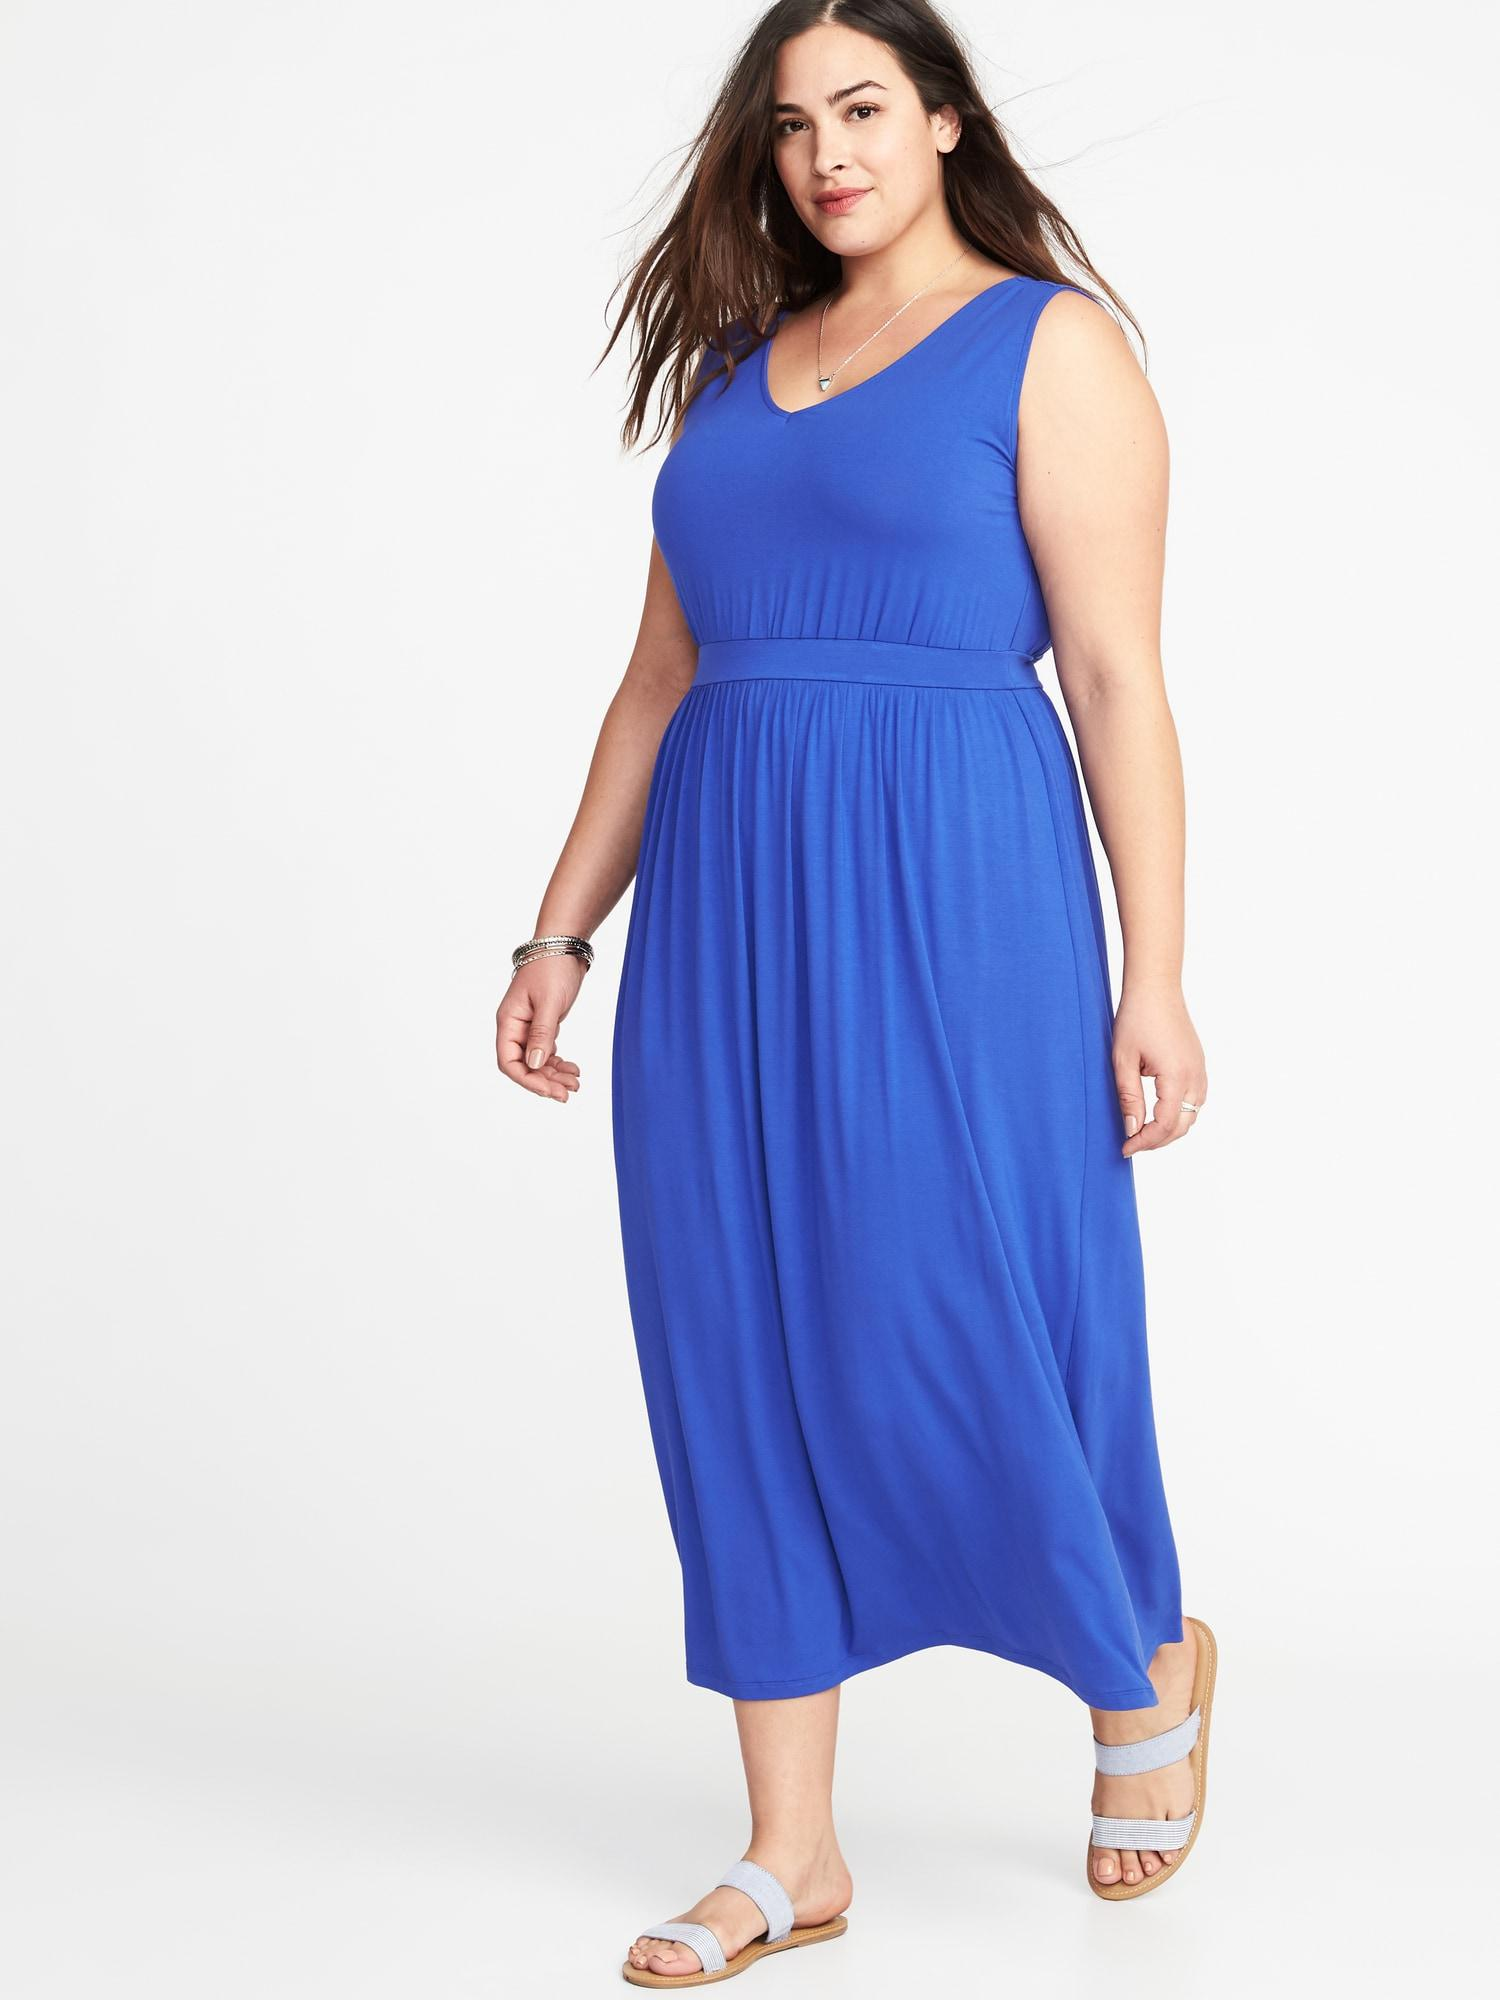 Old Navy Empire-waist Plus-size V-neck Maxi Dress in Blue - Lyst